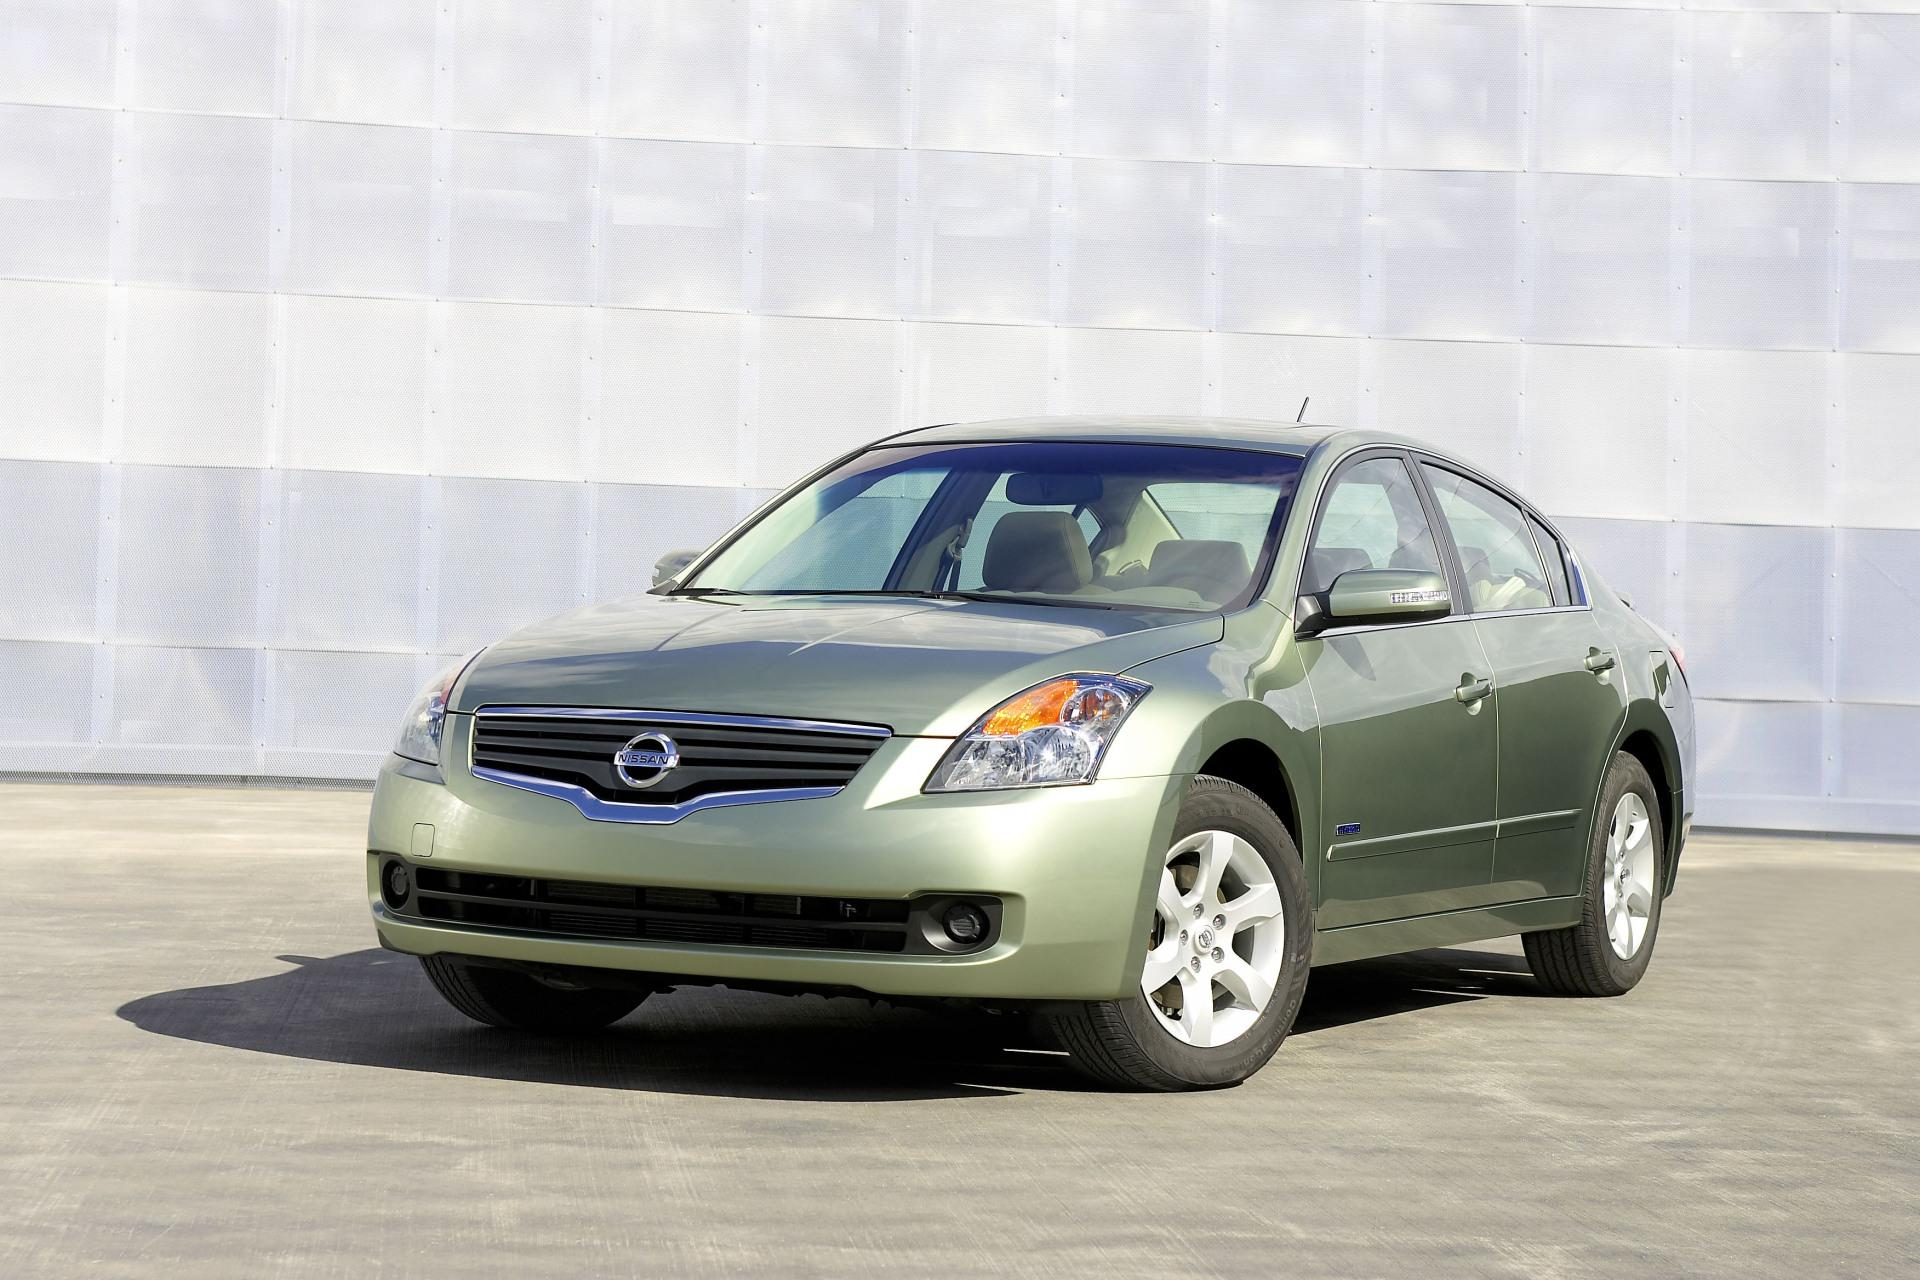 2009 Nissan Altima Hybrid News And Information Conceptcarz Com